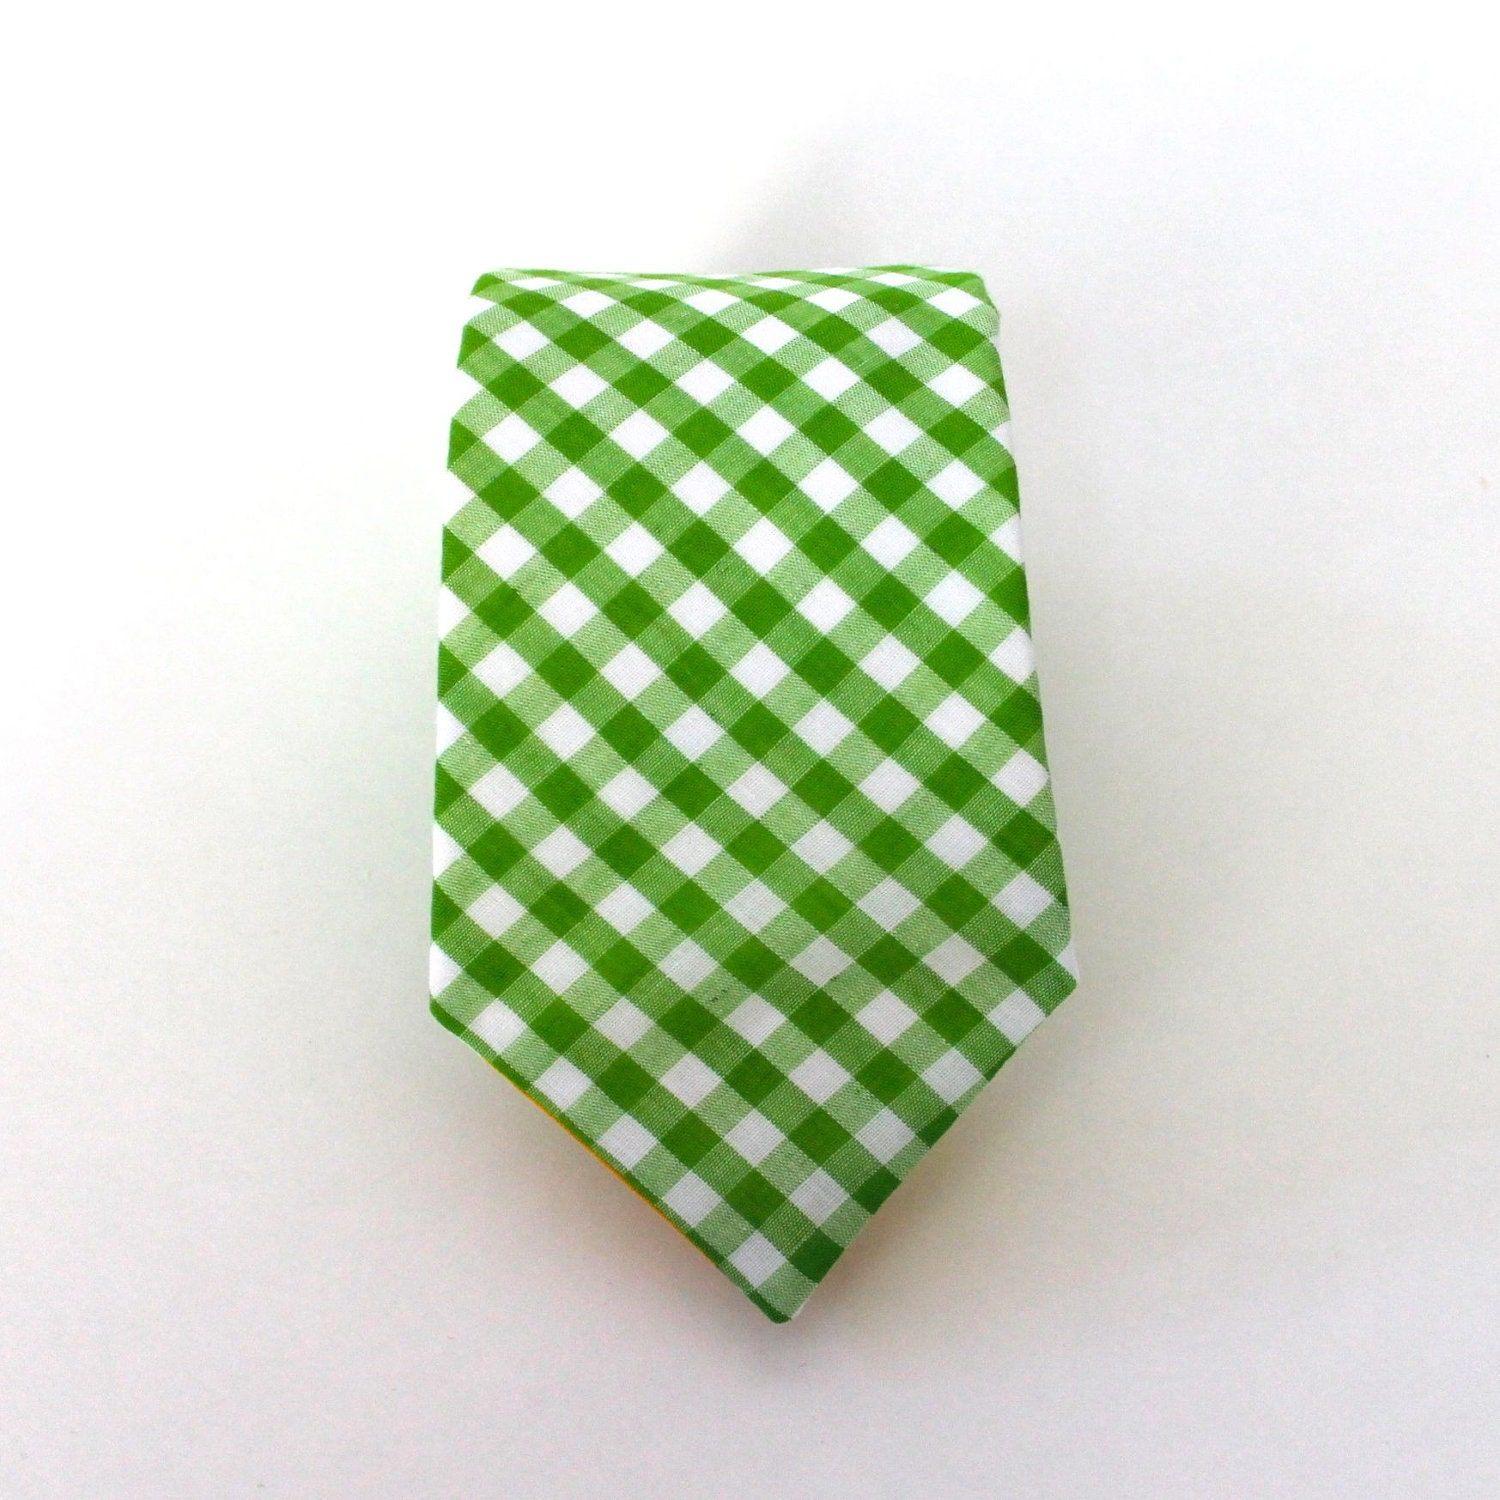 Men's Tie - Lime Green Gingham - Grass Green and White Plaid - HandmadeByEmy